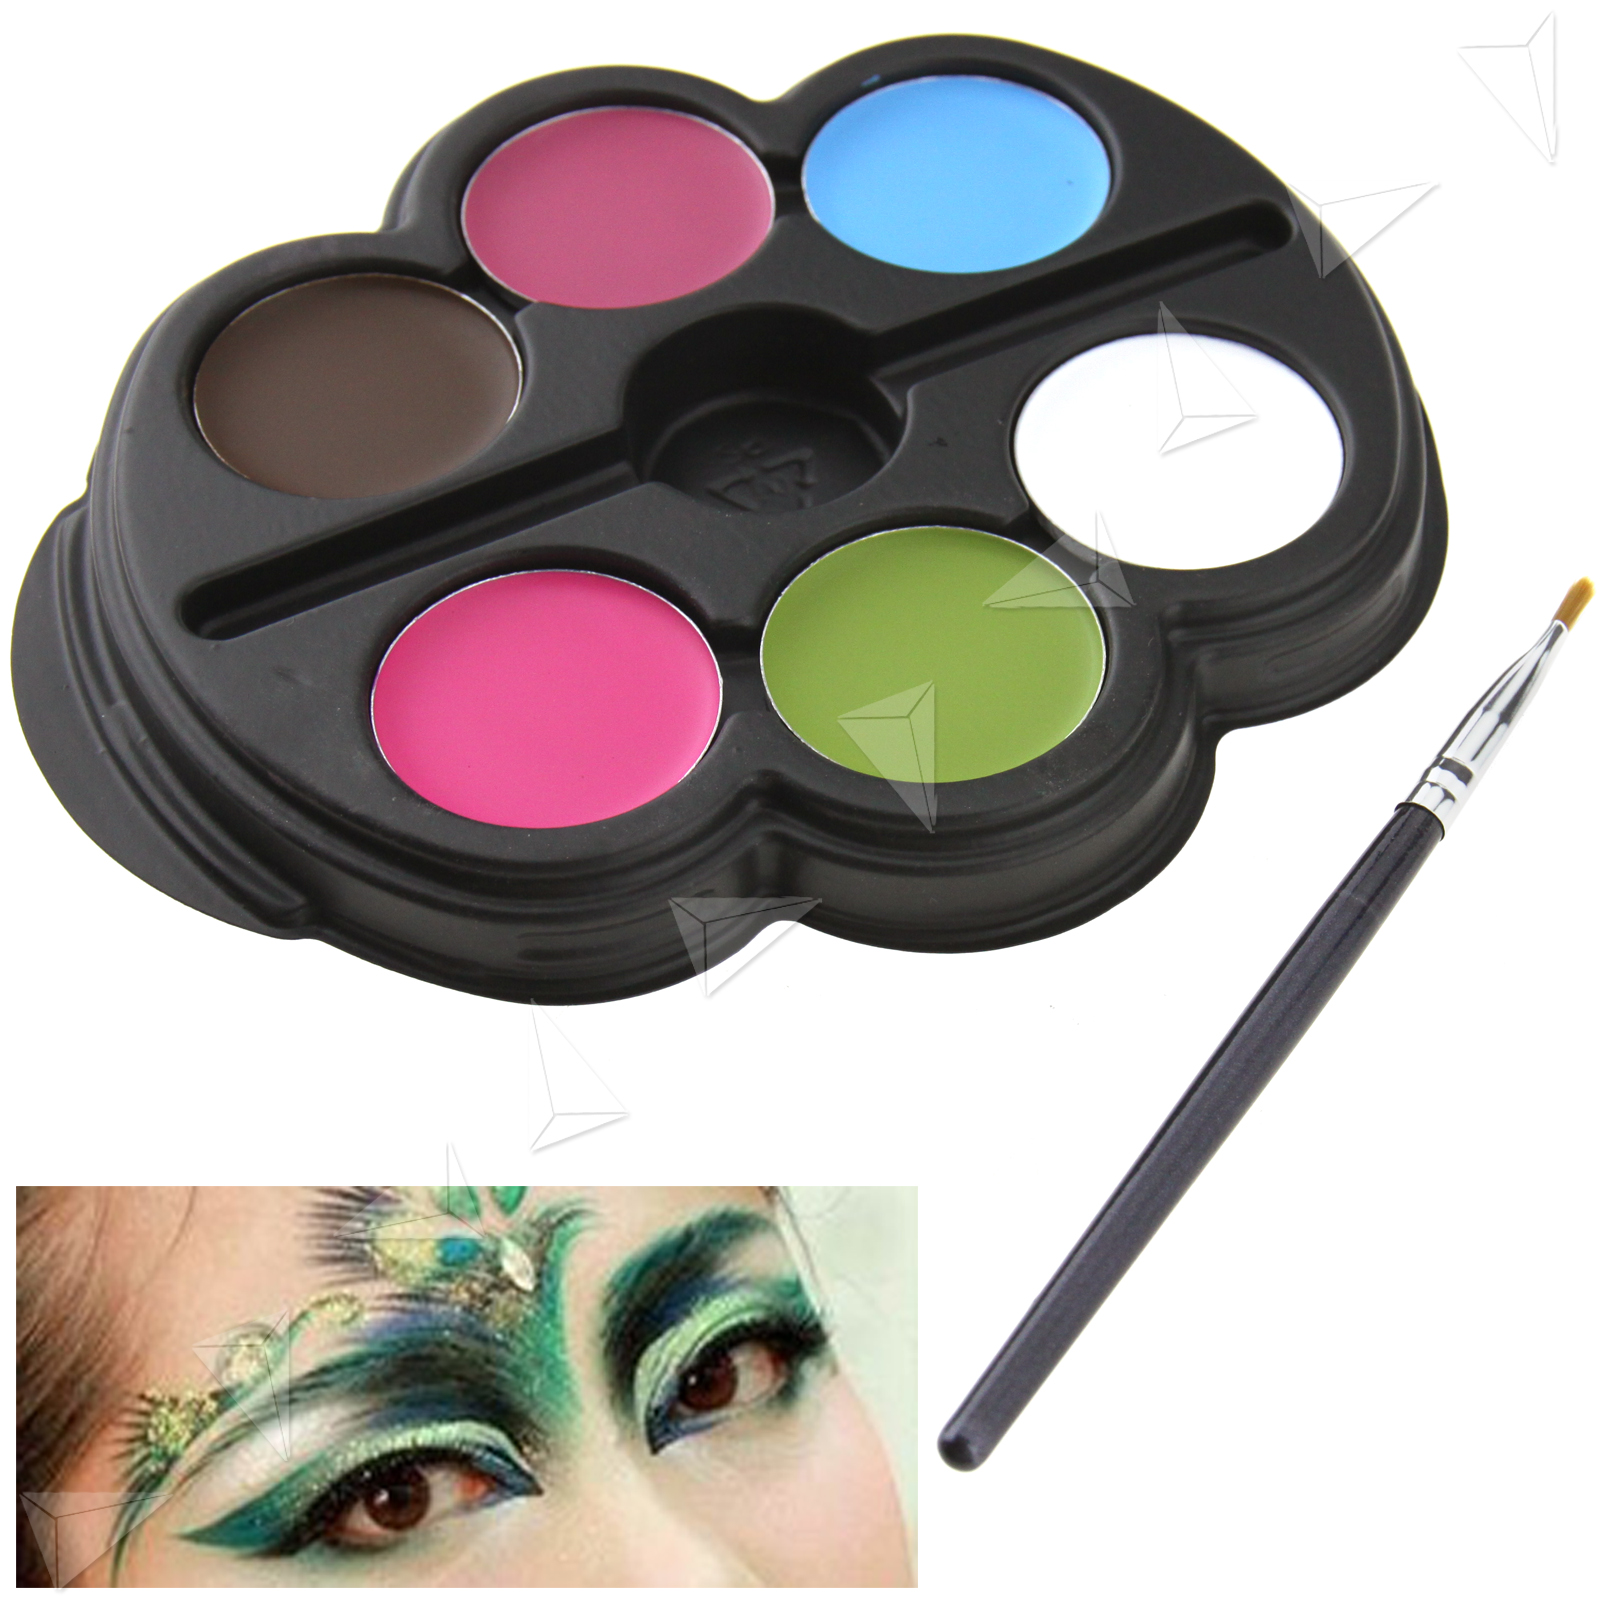 Body Art Face Paint Palettes Make Up Stage Kit Party Kids Set Halloween Festival